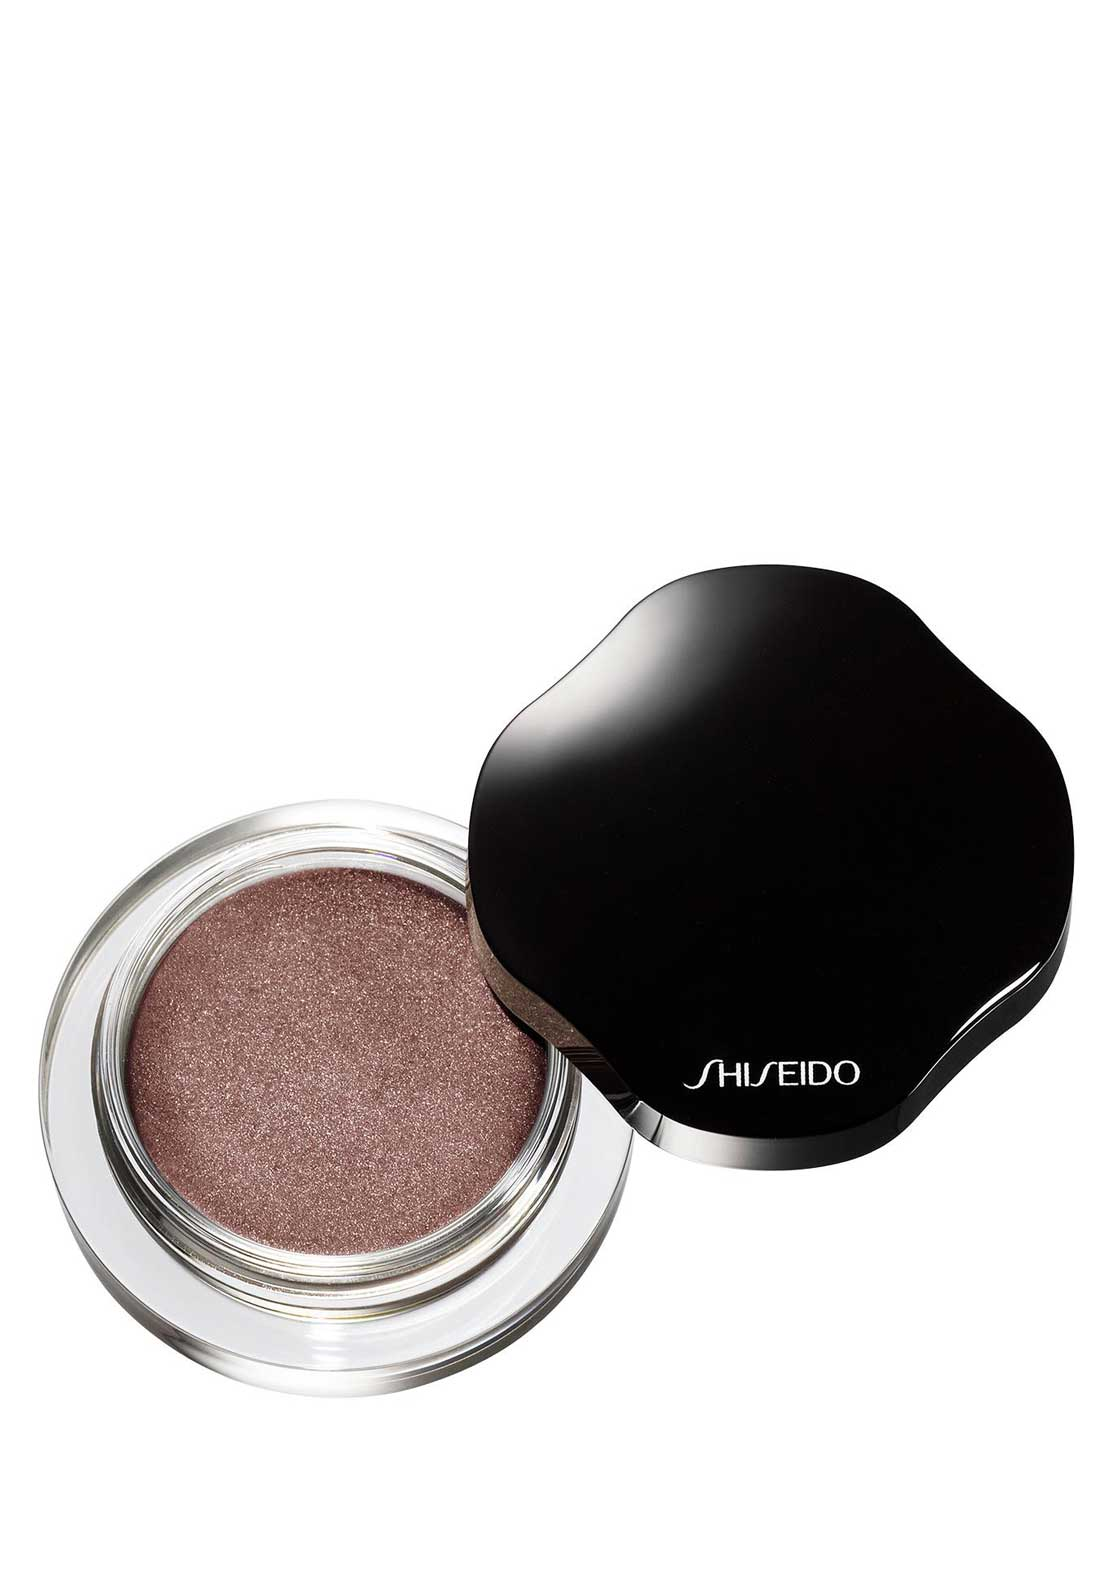 Shiseido Shimmering Cream Eye Shadow, VI730 Garnet